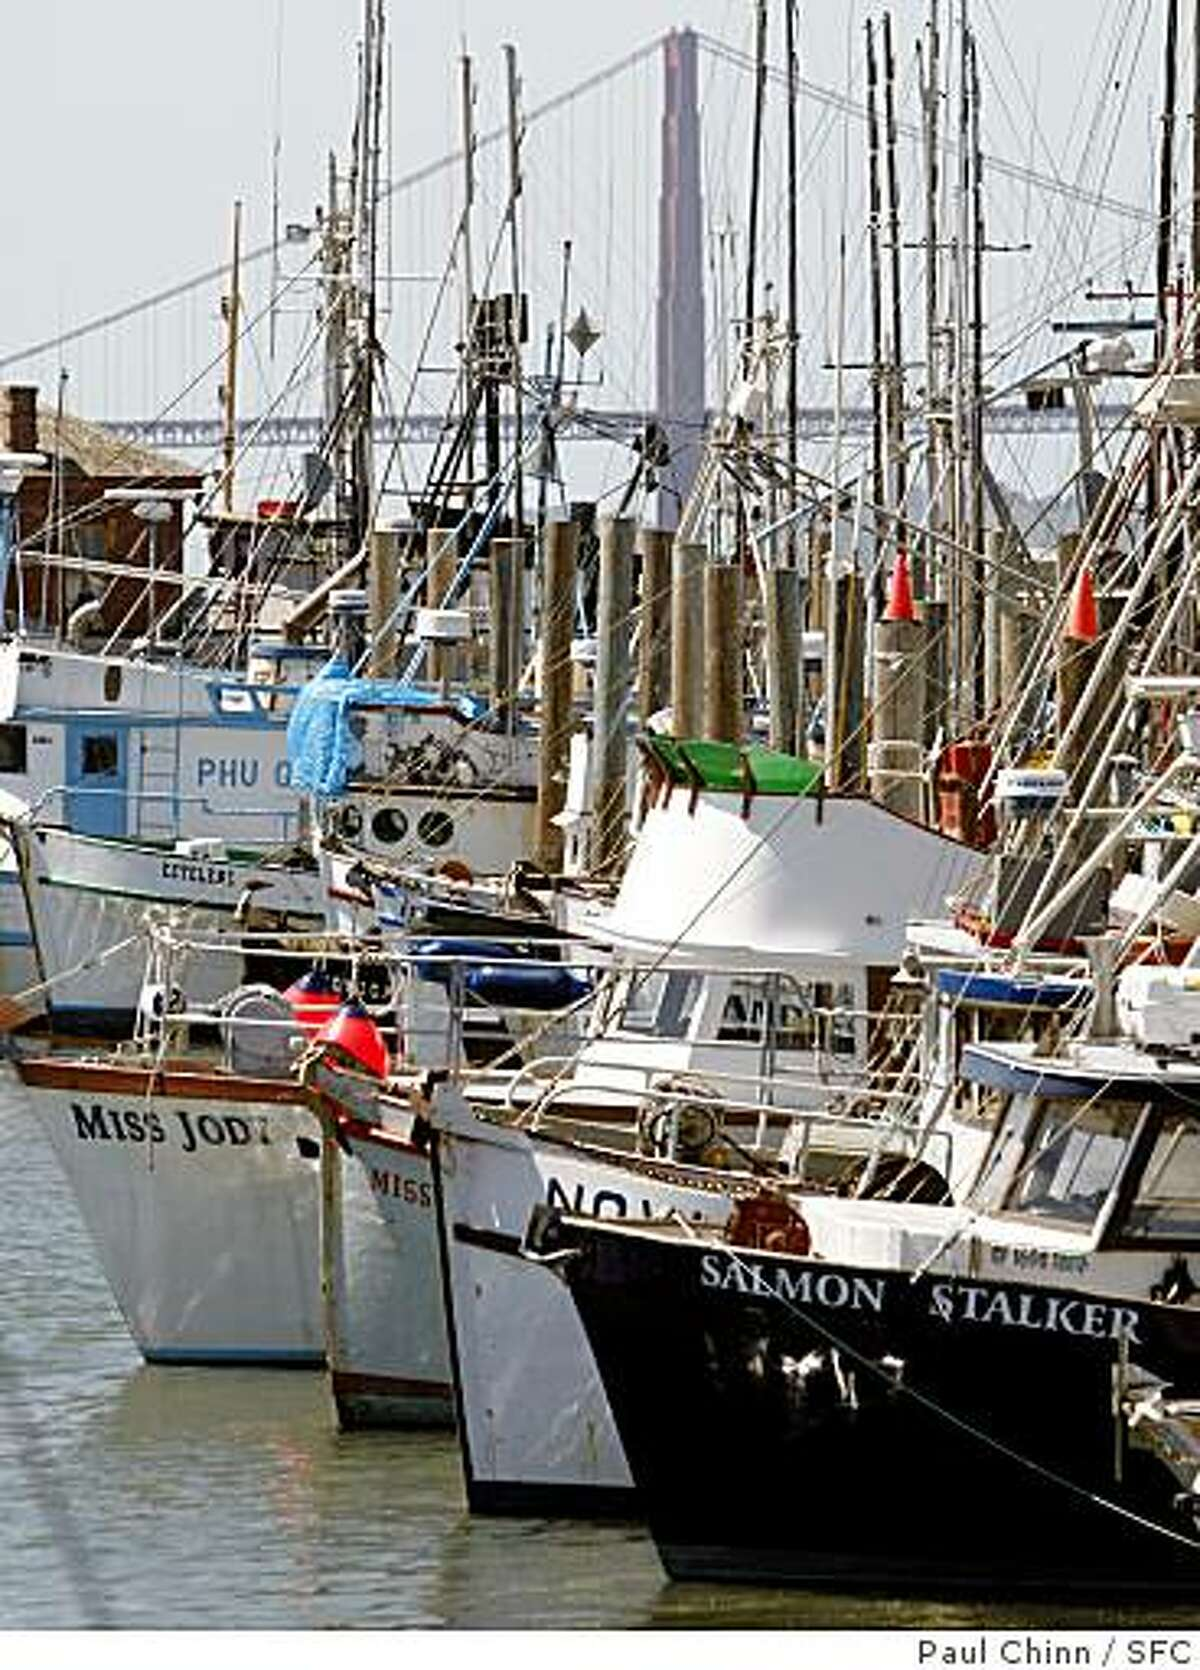 The Salmon Stalker and the rest of the salmon fishing fleet remain in port at Fisherman's Wharf in San Francisco, Calif., on Thursday, April 10, 2008. The Pacific Fishery Management Council is deciding whether or not to cancel or severely limit this year's salmon season.Photo by Paul Chinn / San Francisco Chronicle